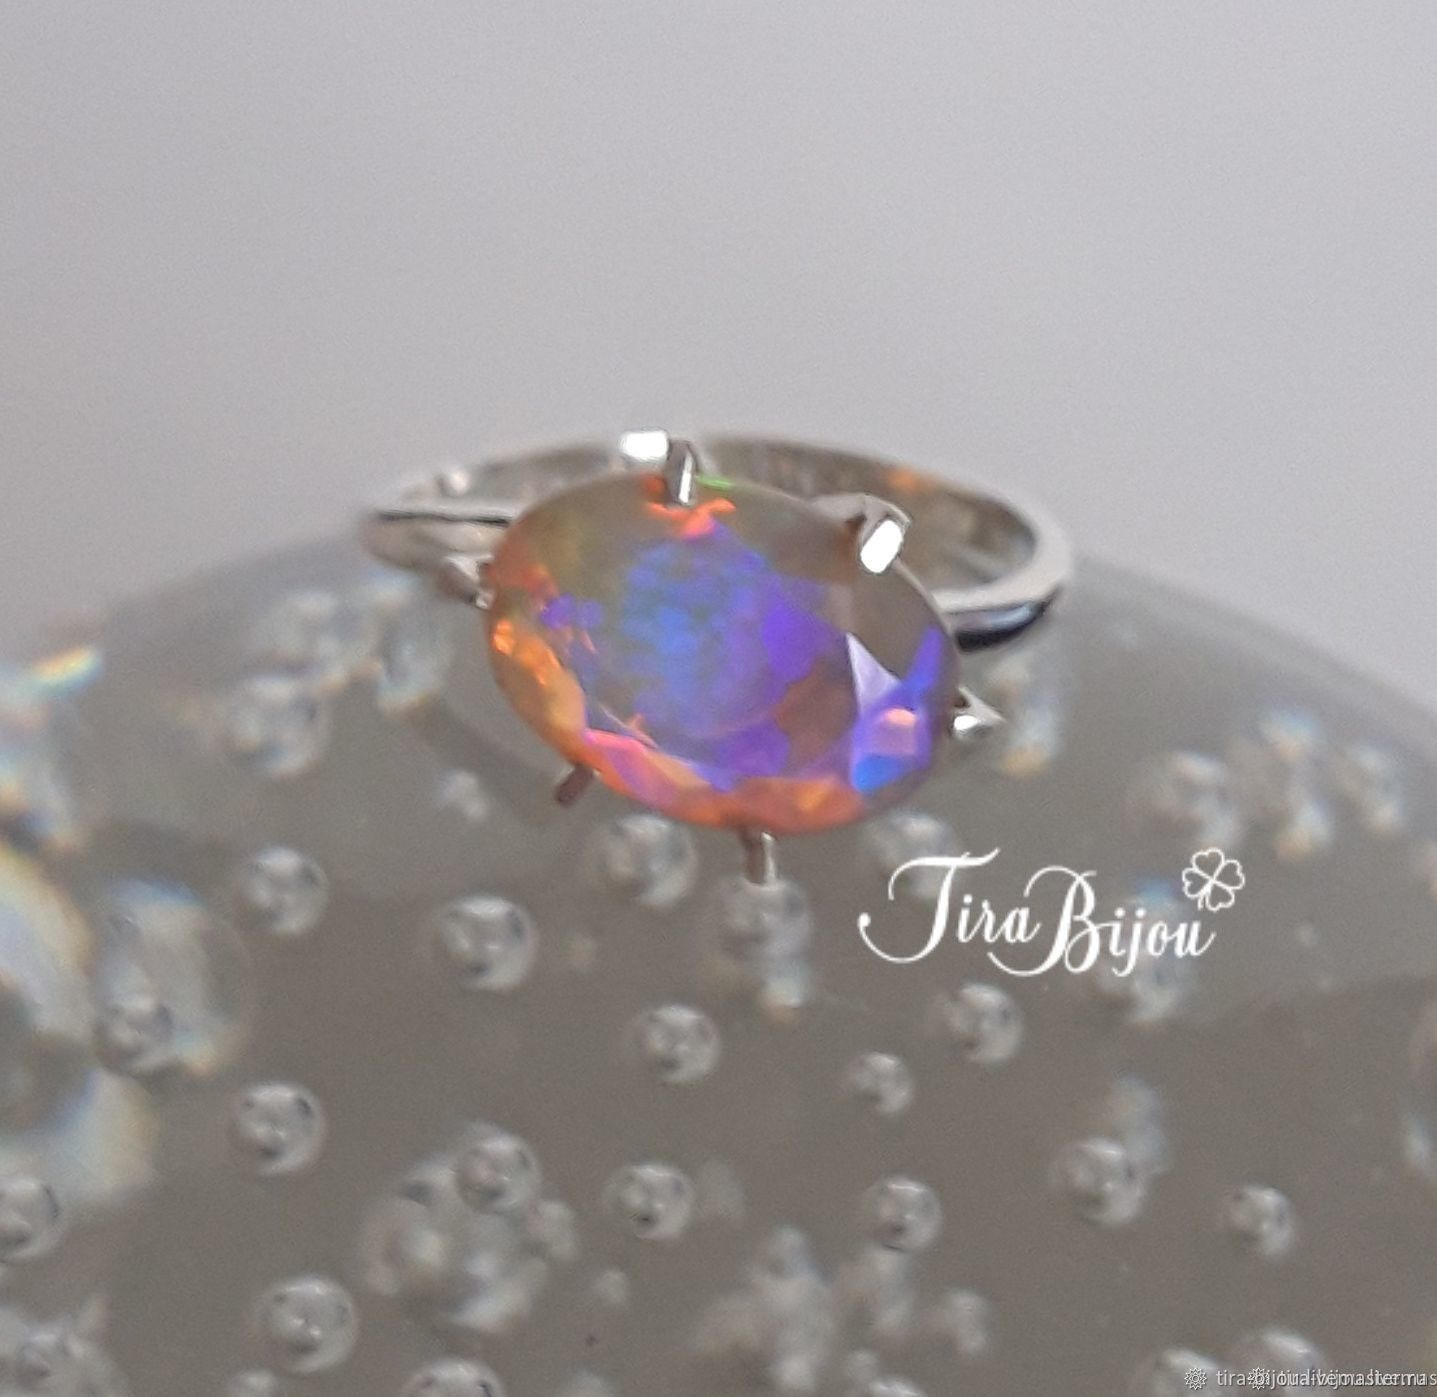 Silver ring with Ethiopian opal, Rings, Moscow,  Фото №1